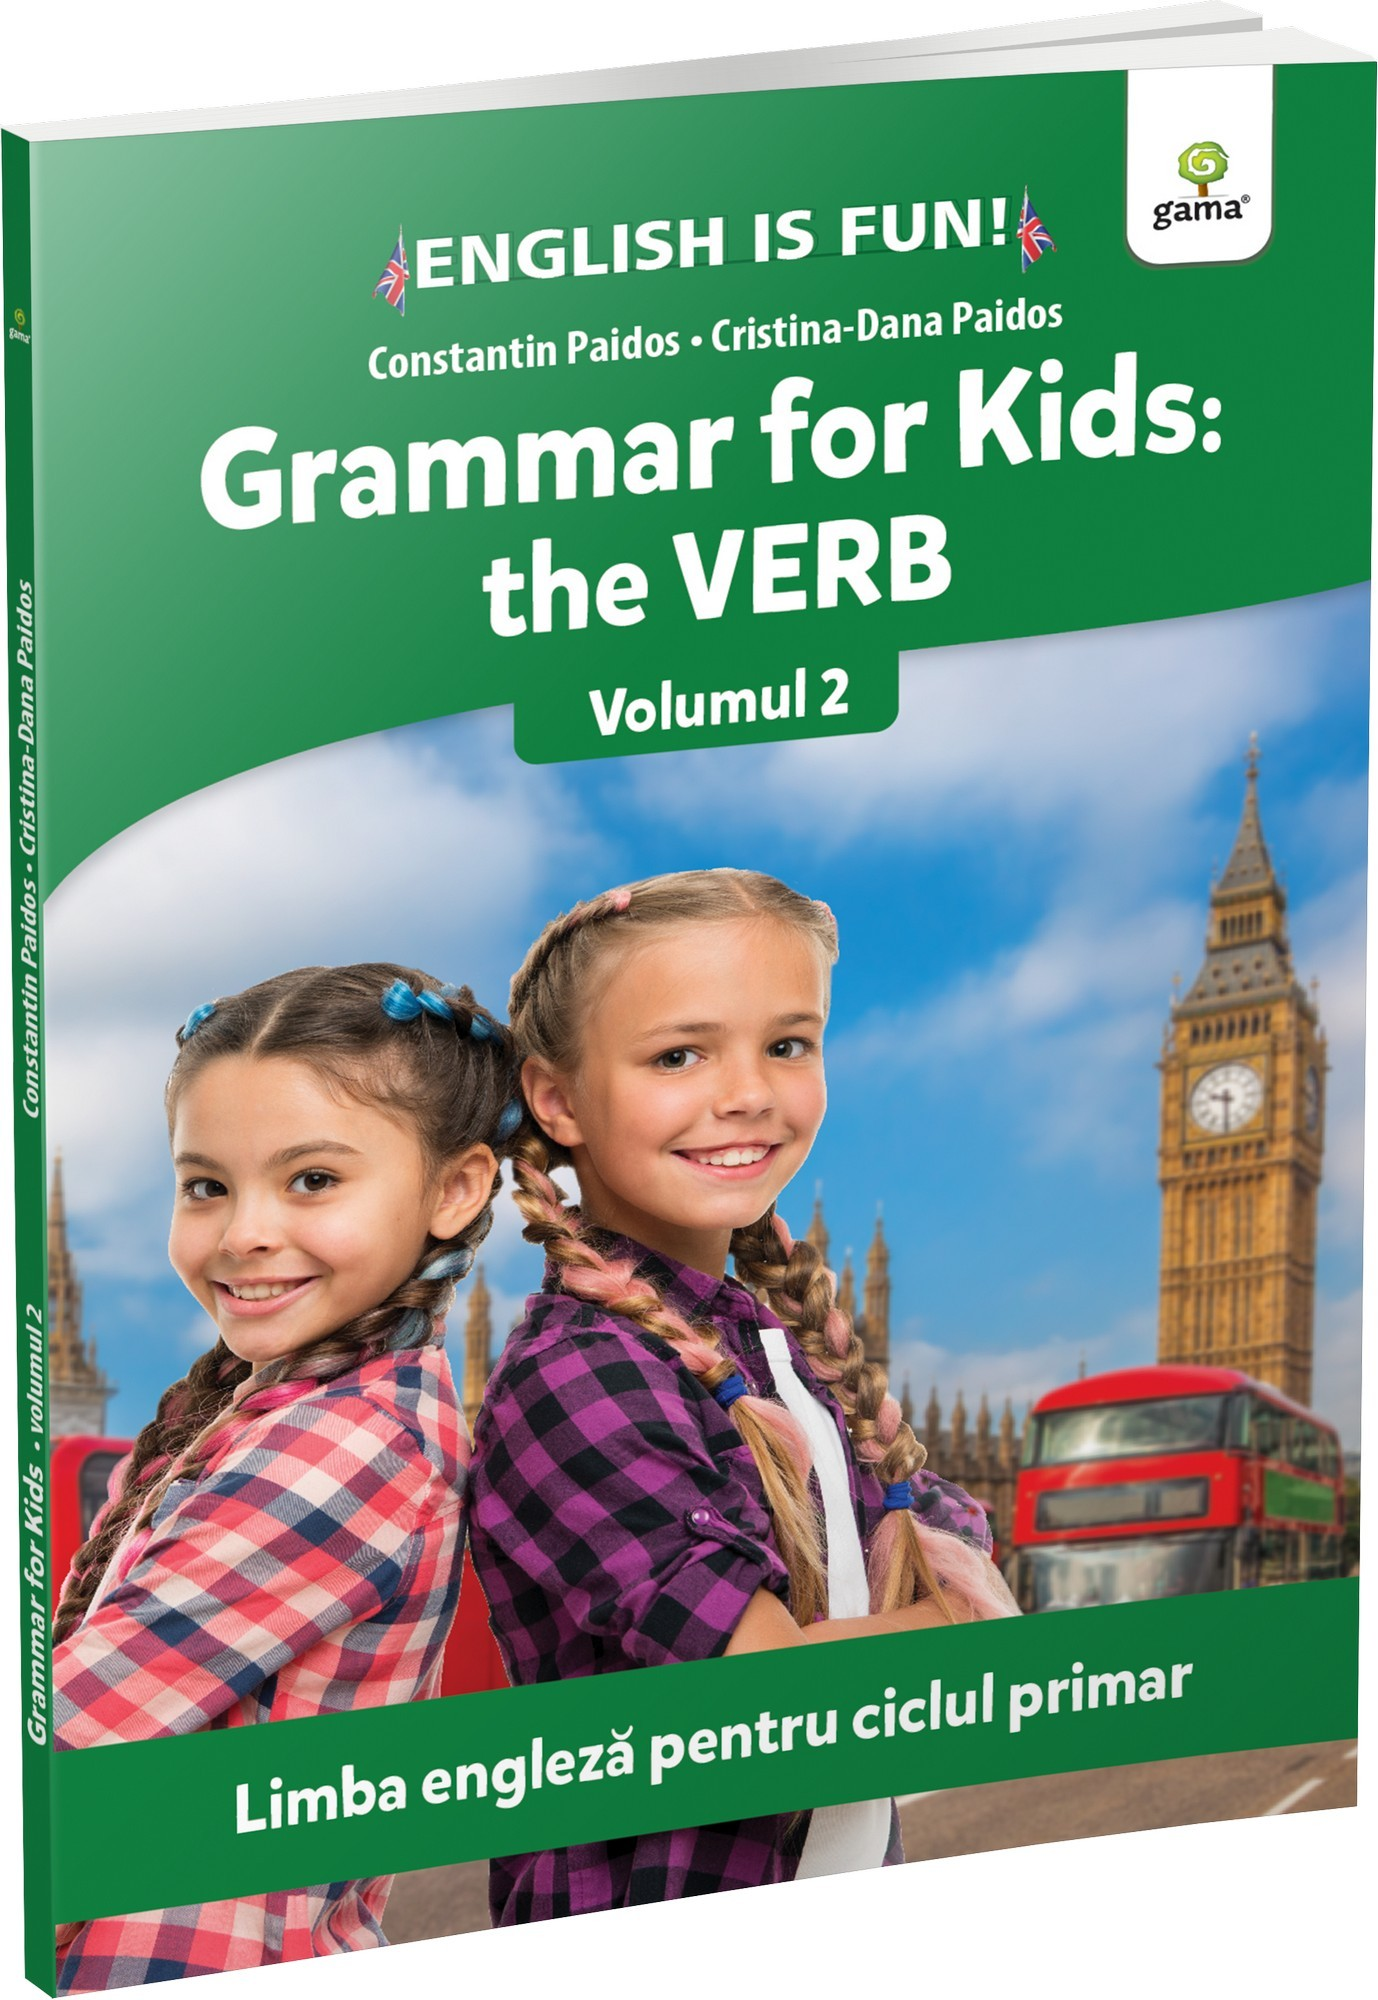 Grammar for Kids: the Verb - Volumul 2 thumbnail